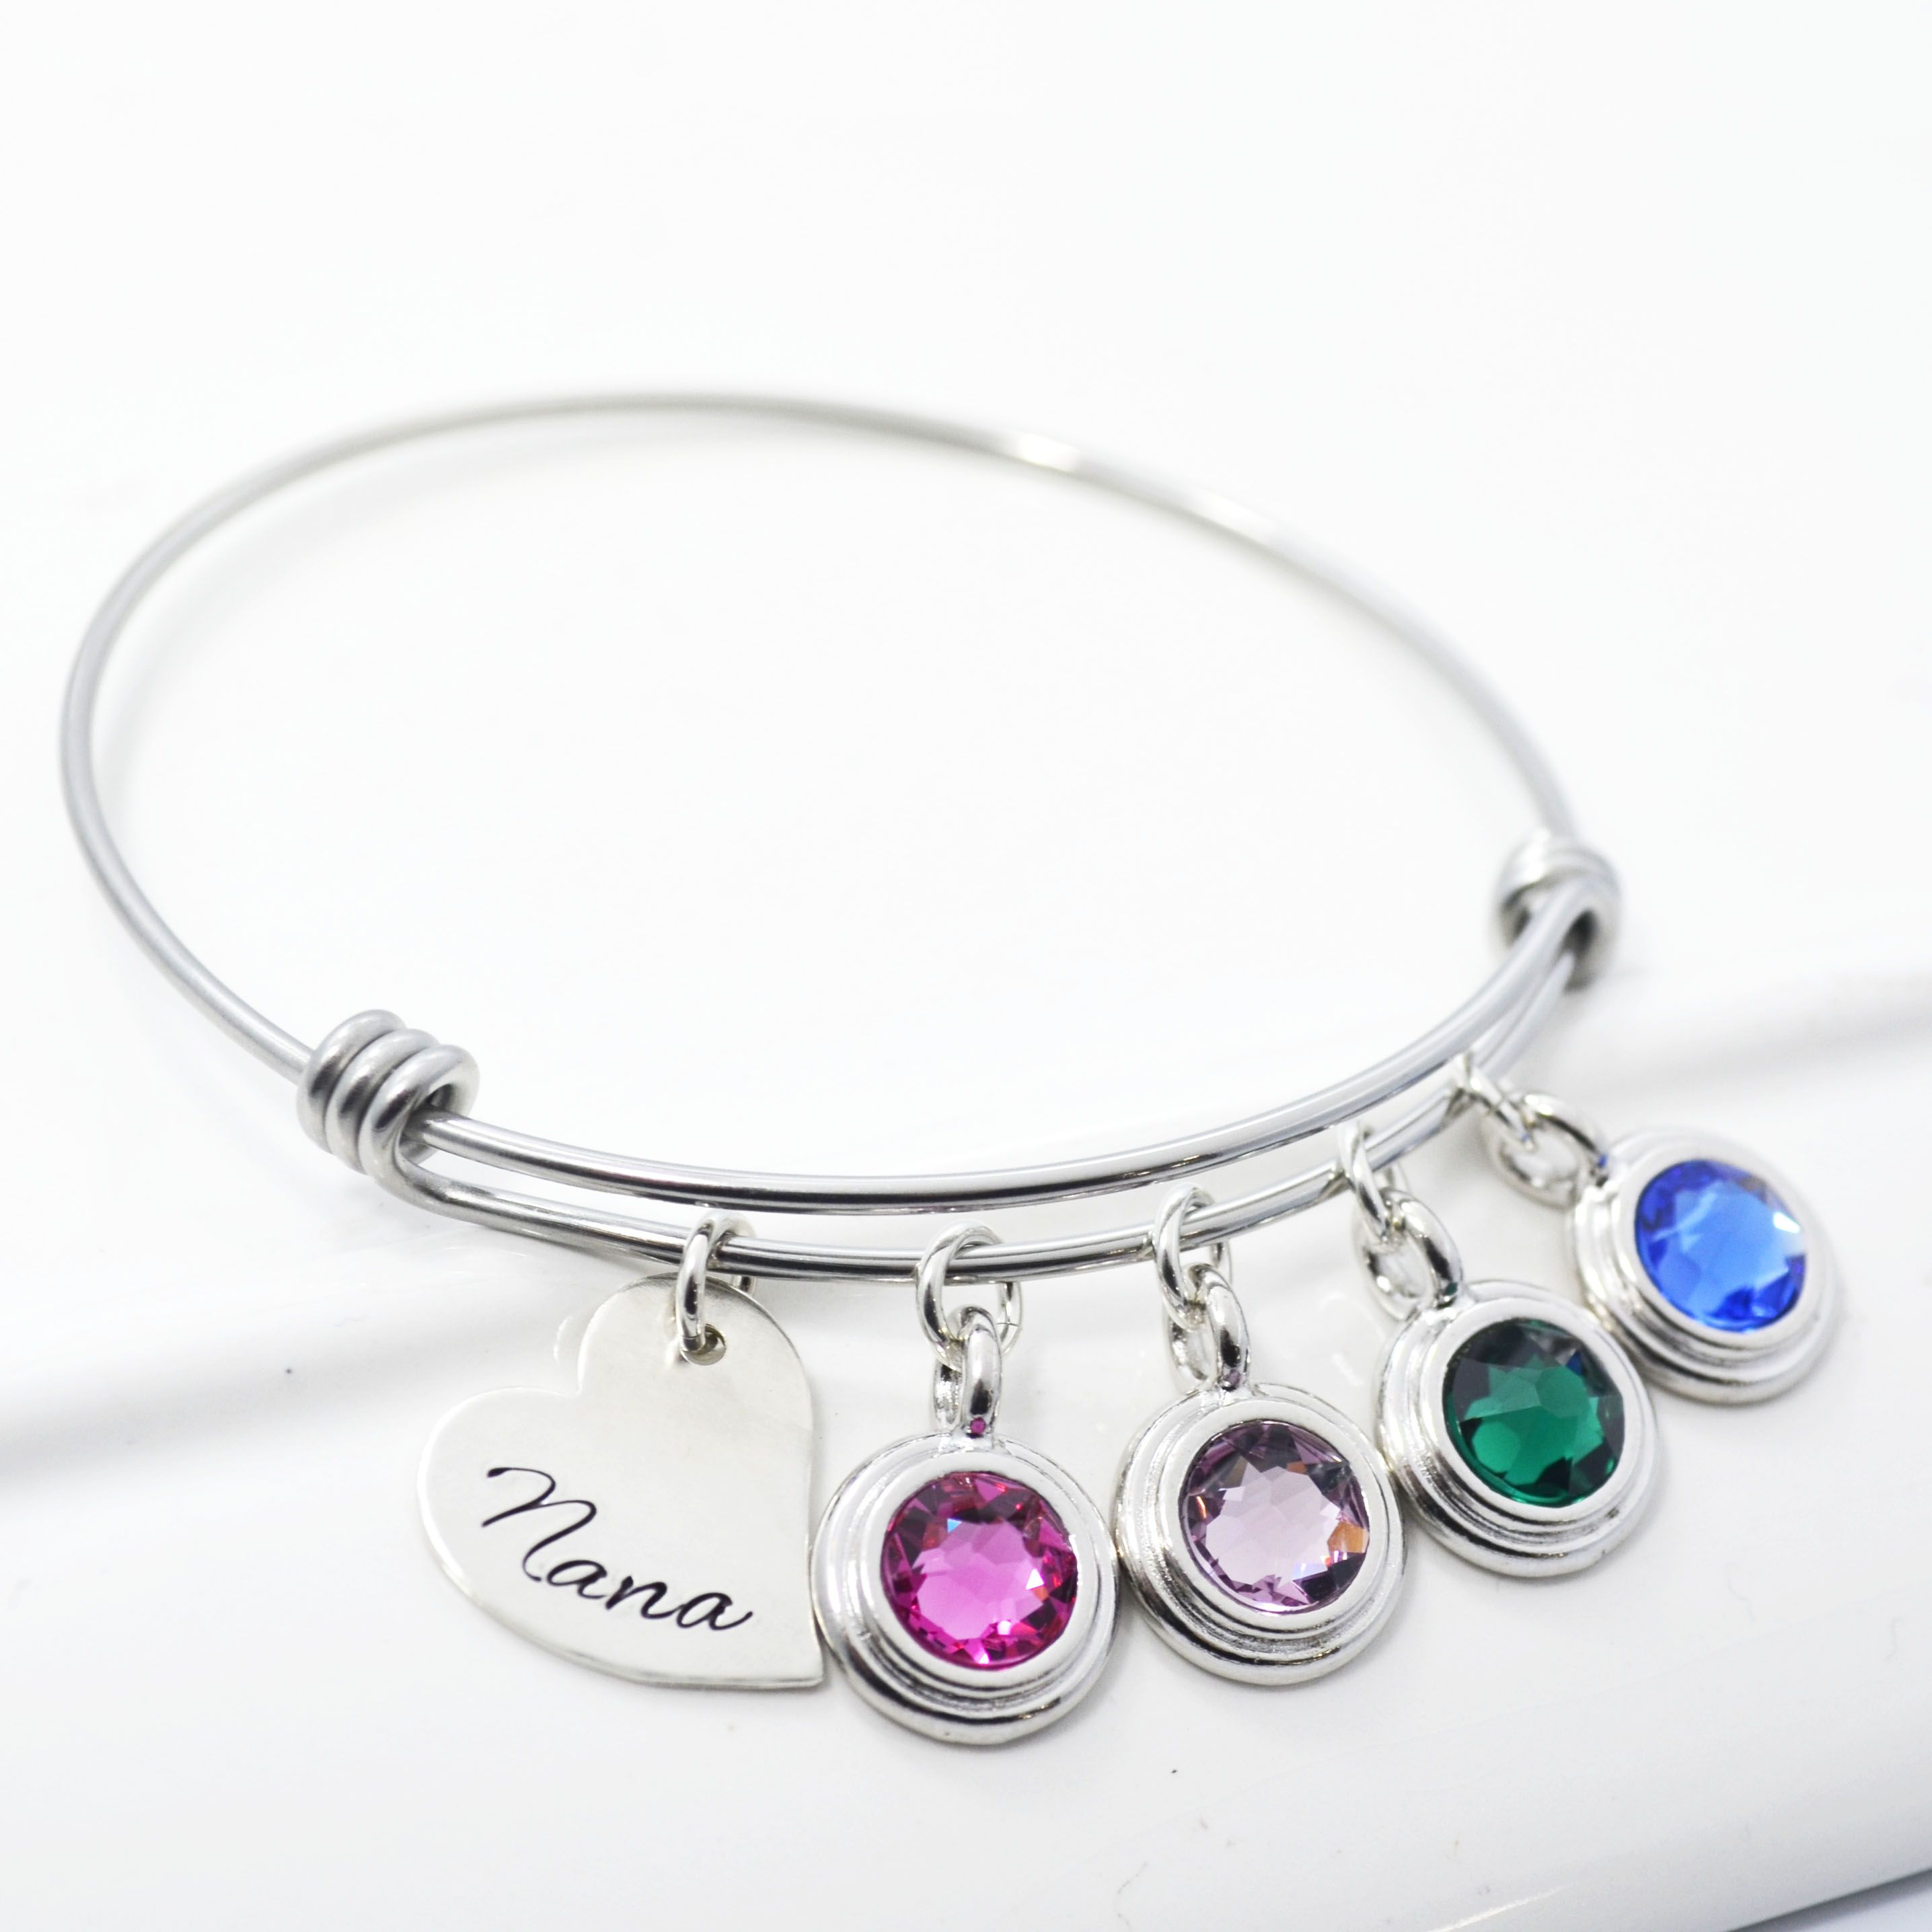 Buy a Hand Crafted Mother Child Birthstone Adjustable Stackable